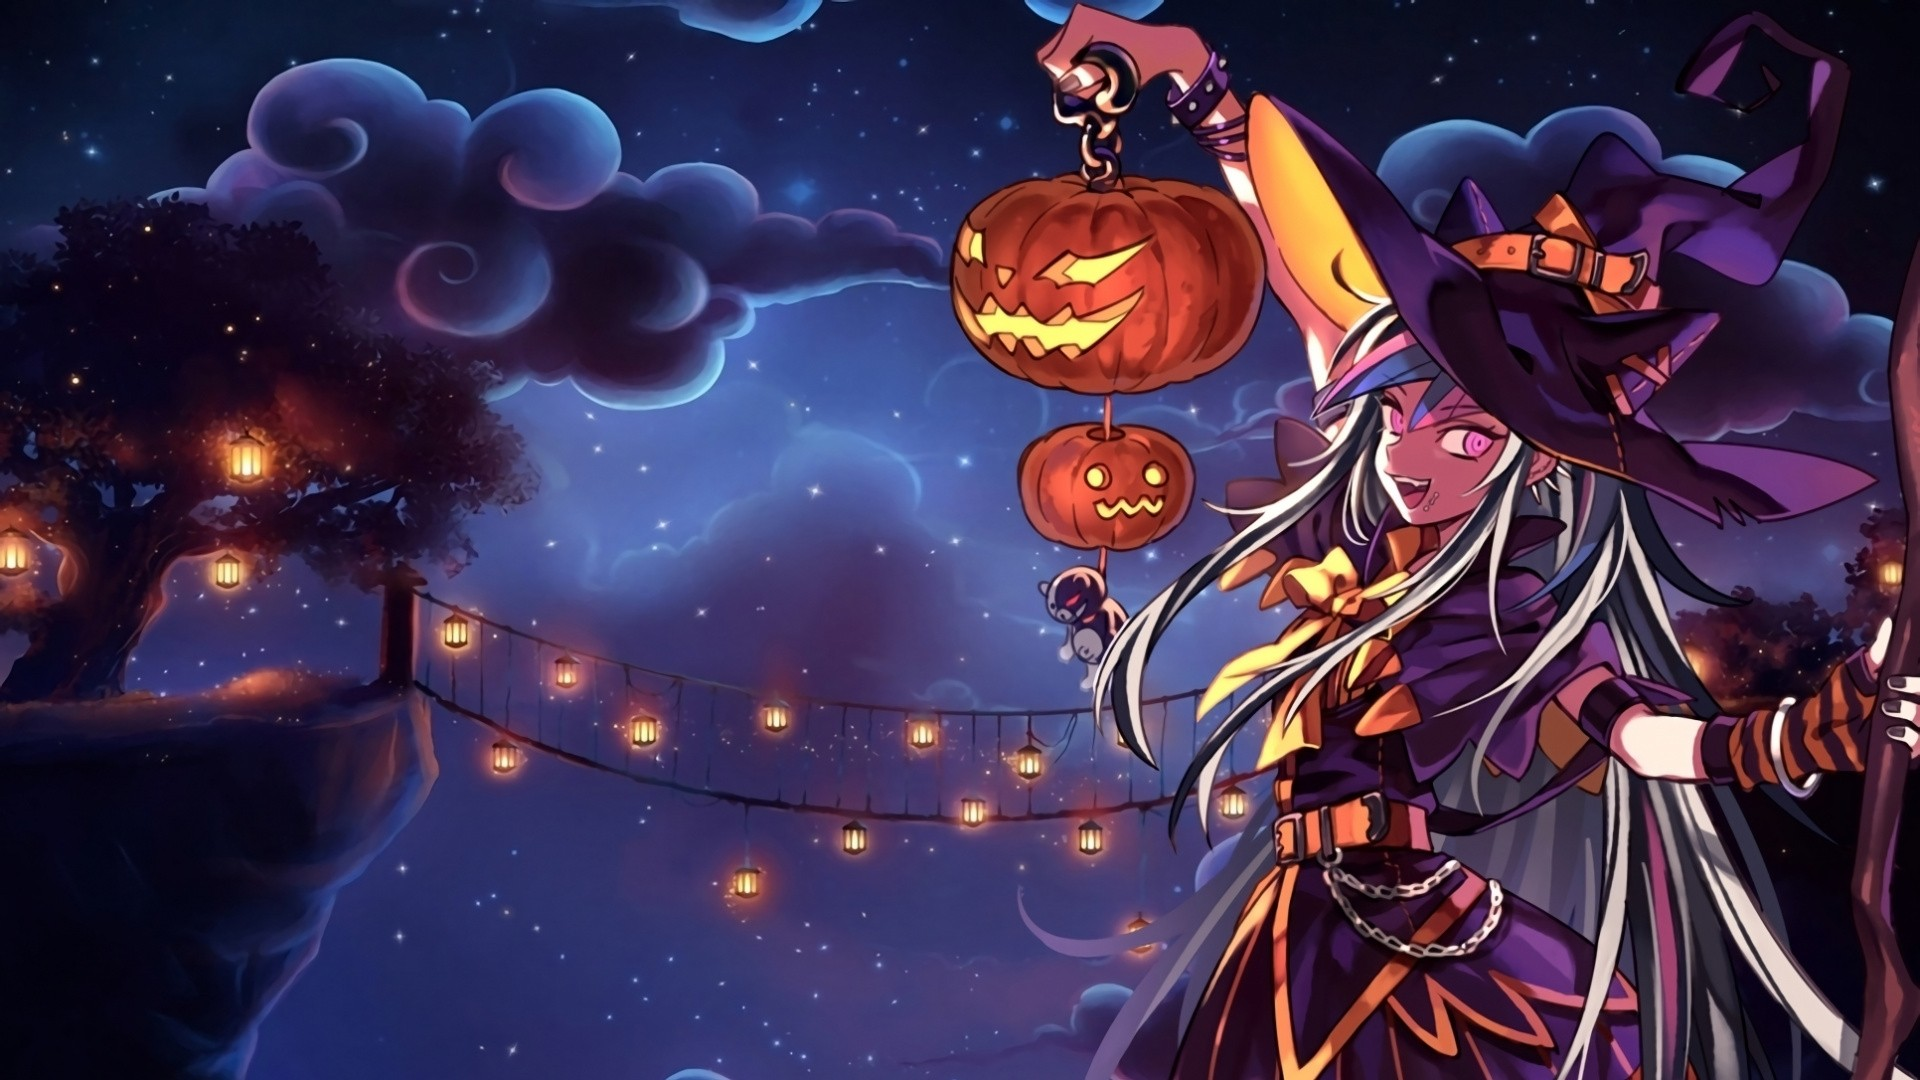 Halloween Anime Free Wallpaper and Background